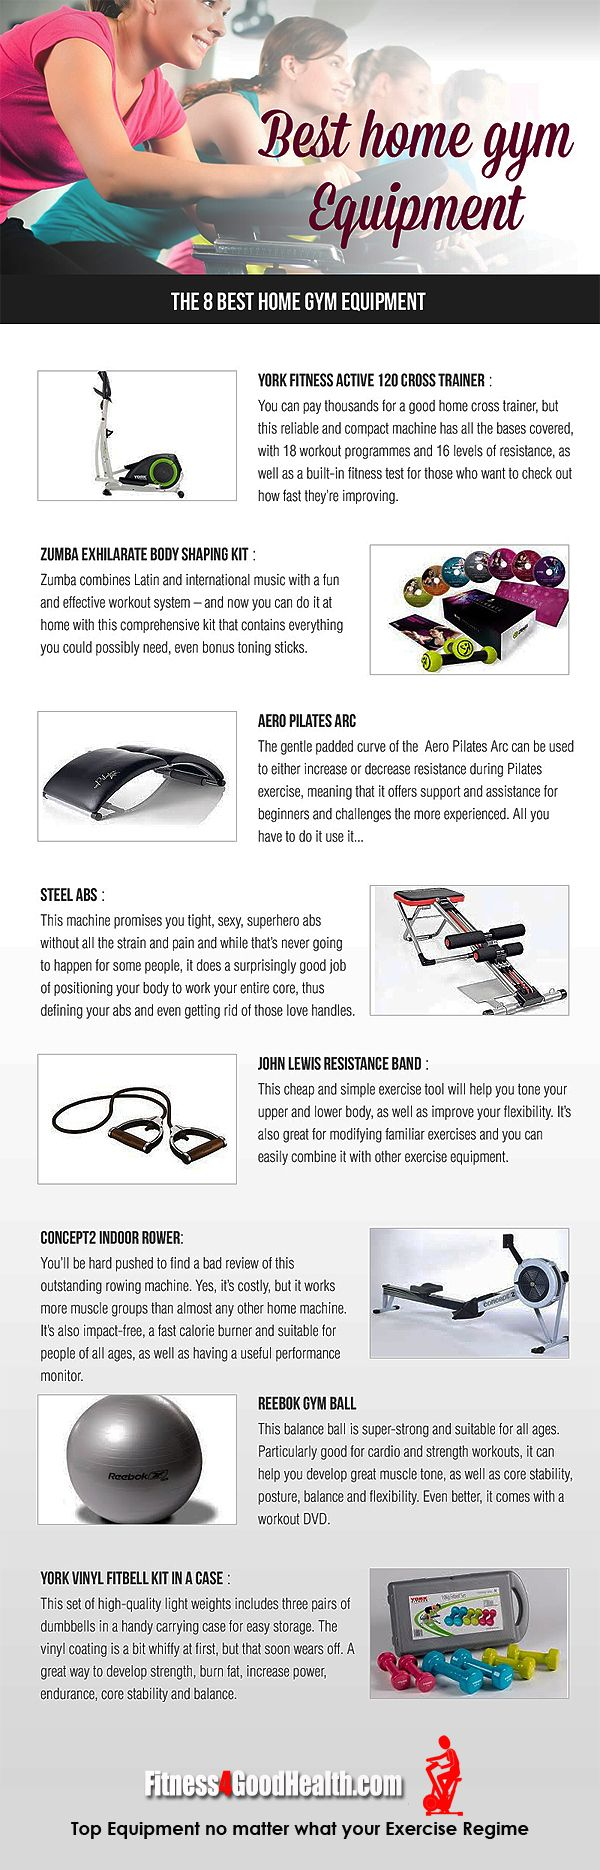 Best Home Gym Equipment Infographic. Gym Membership or your own Home ...